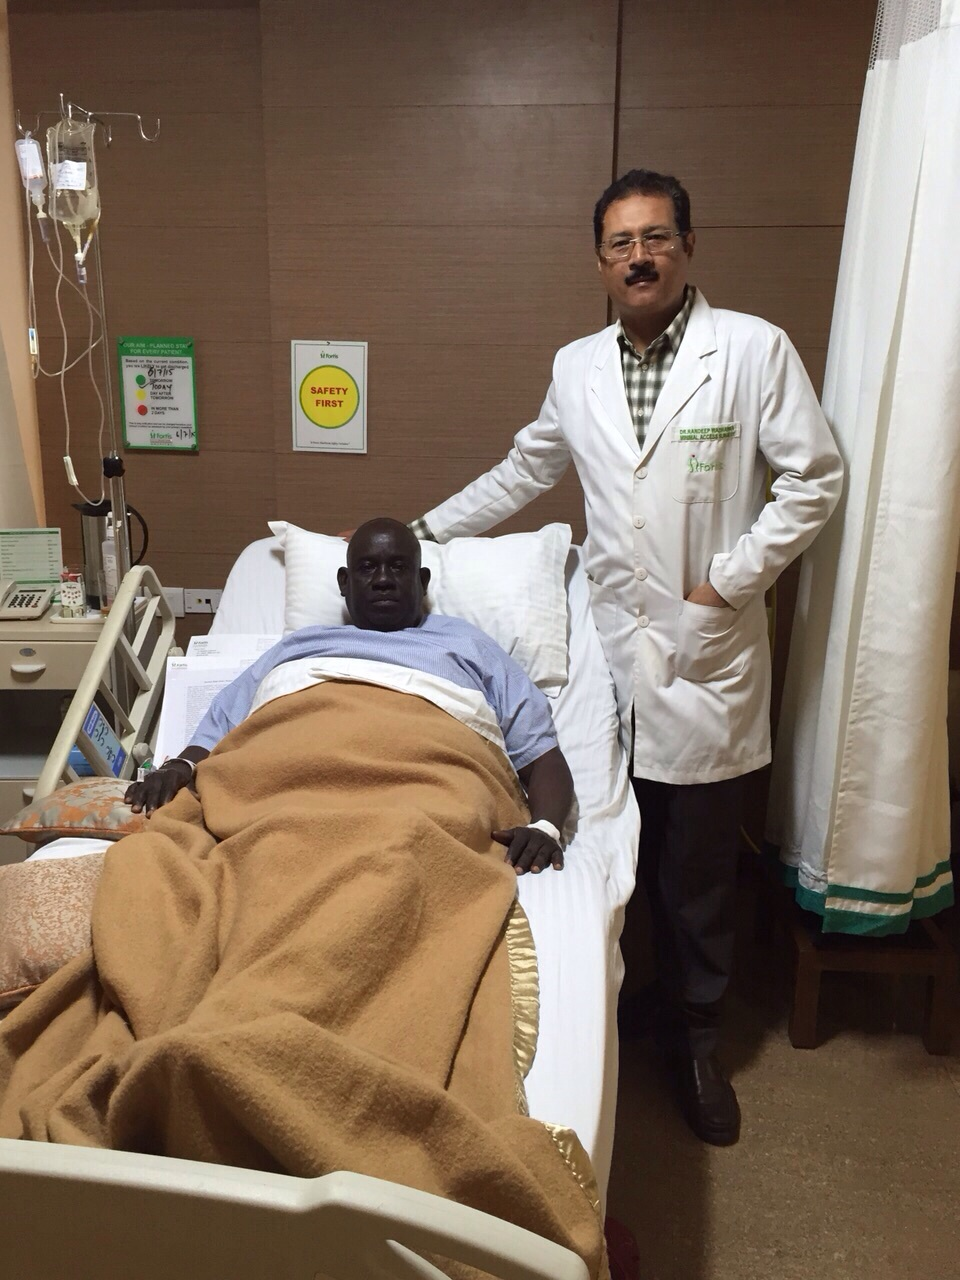 PR_Dr Randeep Wadhawan with the patient3